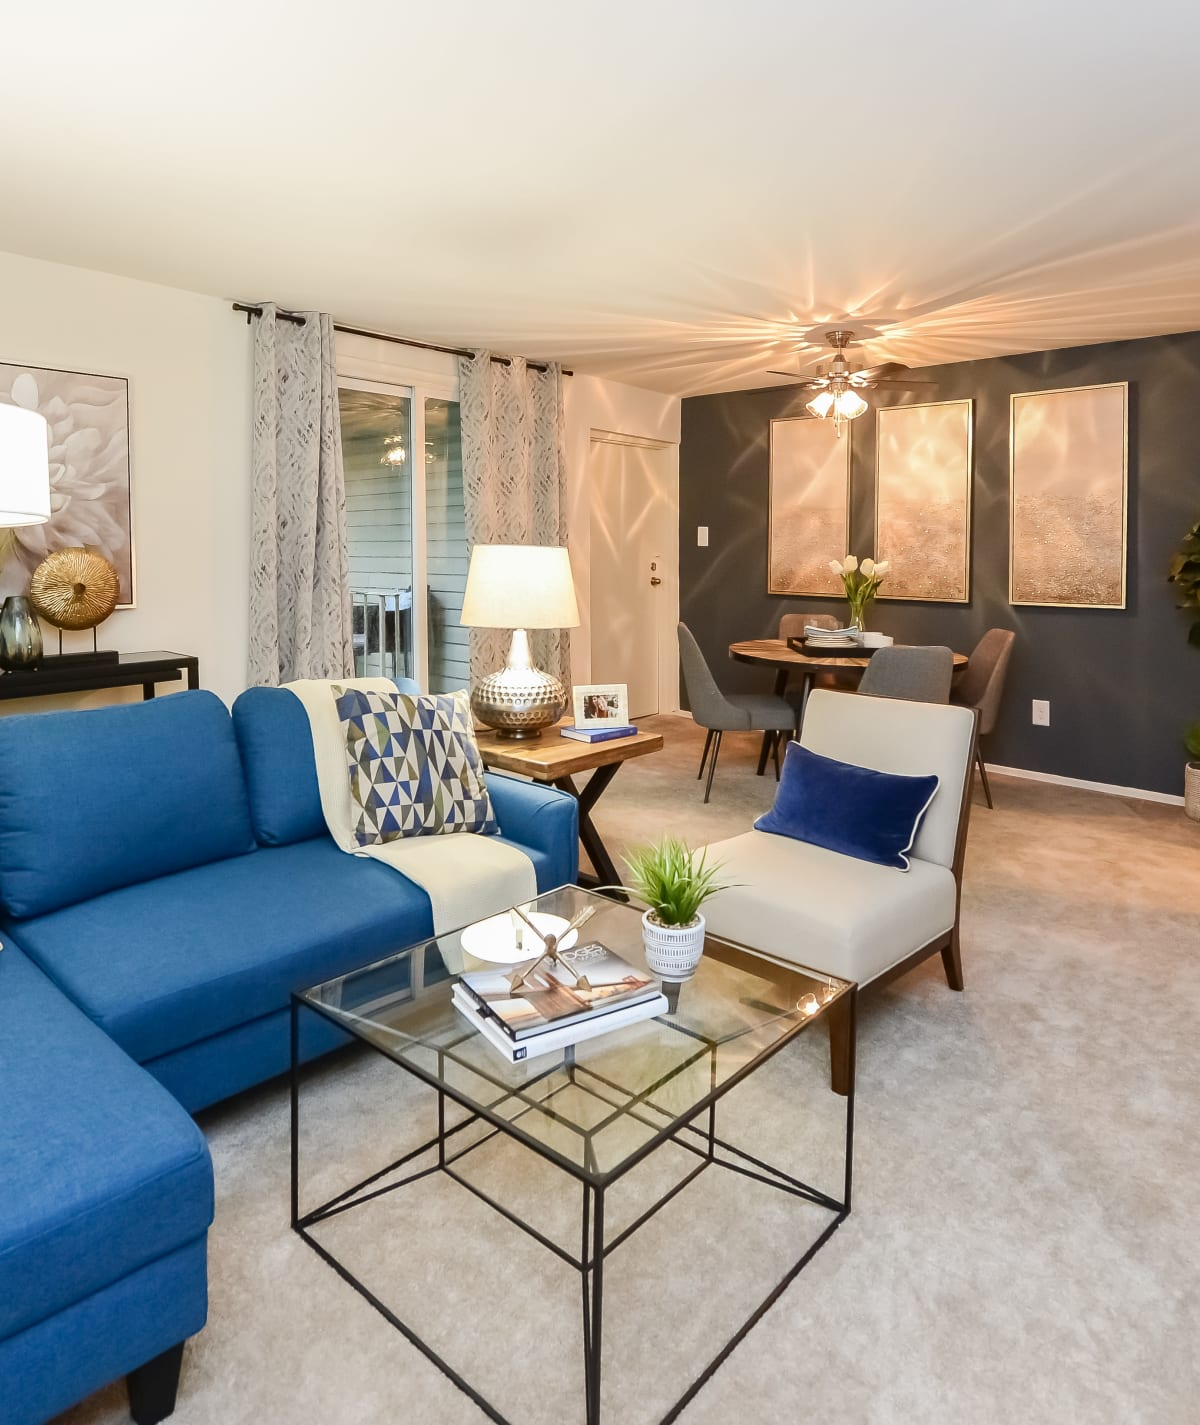 Town Centre Apartment Homes: Apartments & Townhomes In NE Philadelphia, PA